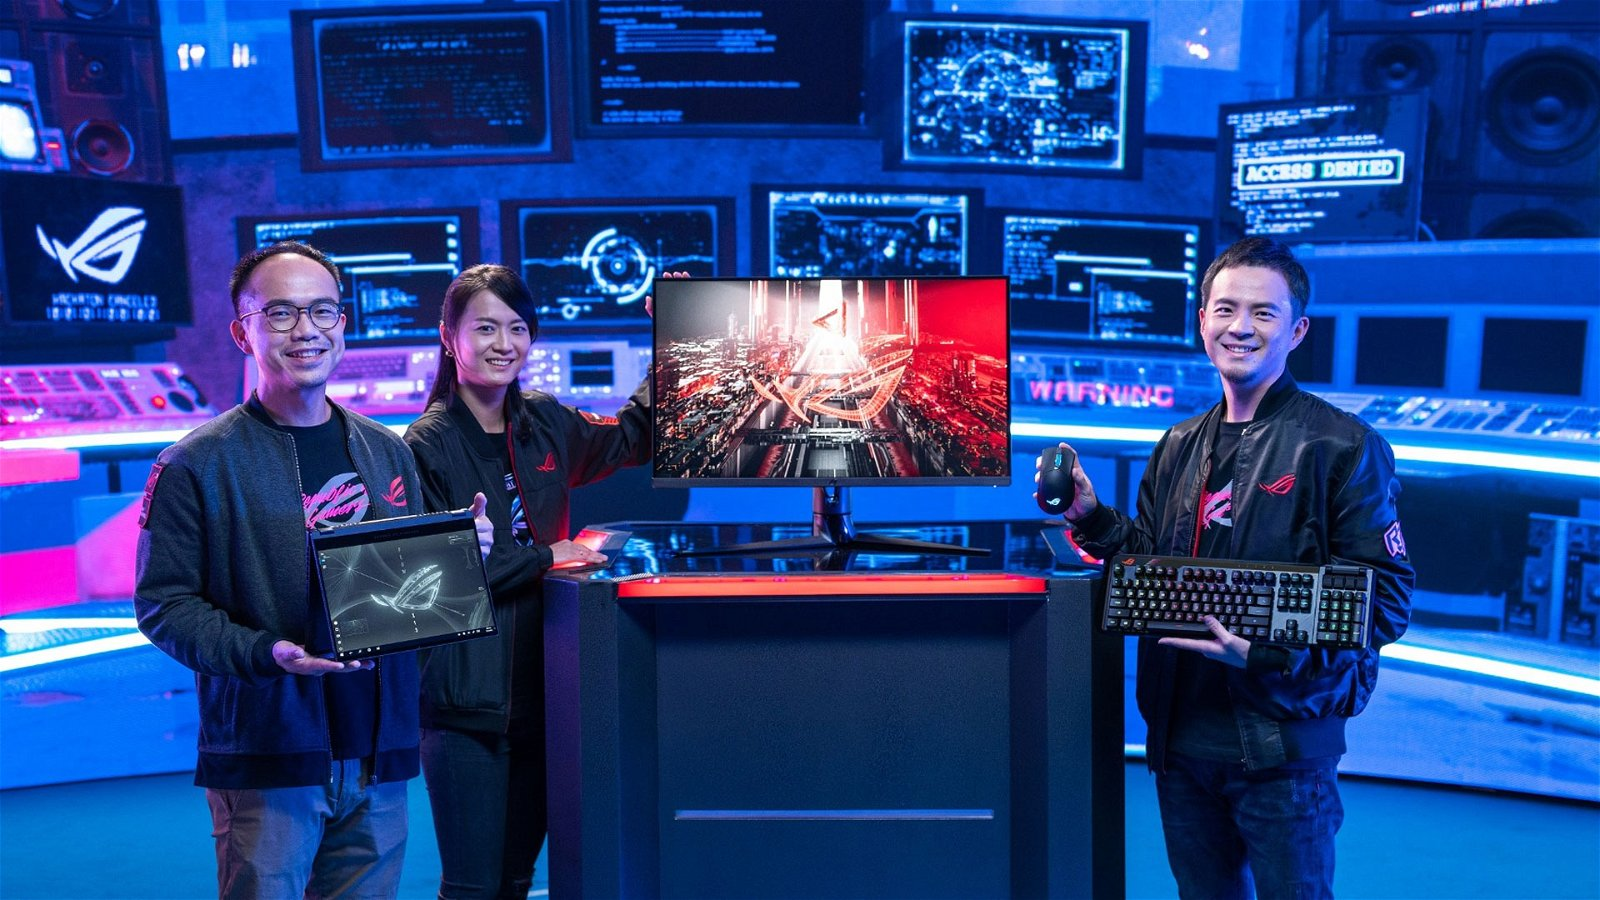 ASUS ROG Line Expands With RTX 30 Series and 11th Gen Intel CPUs 13